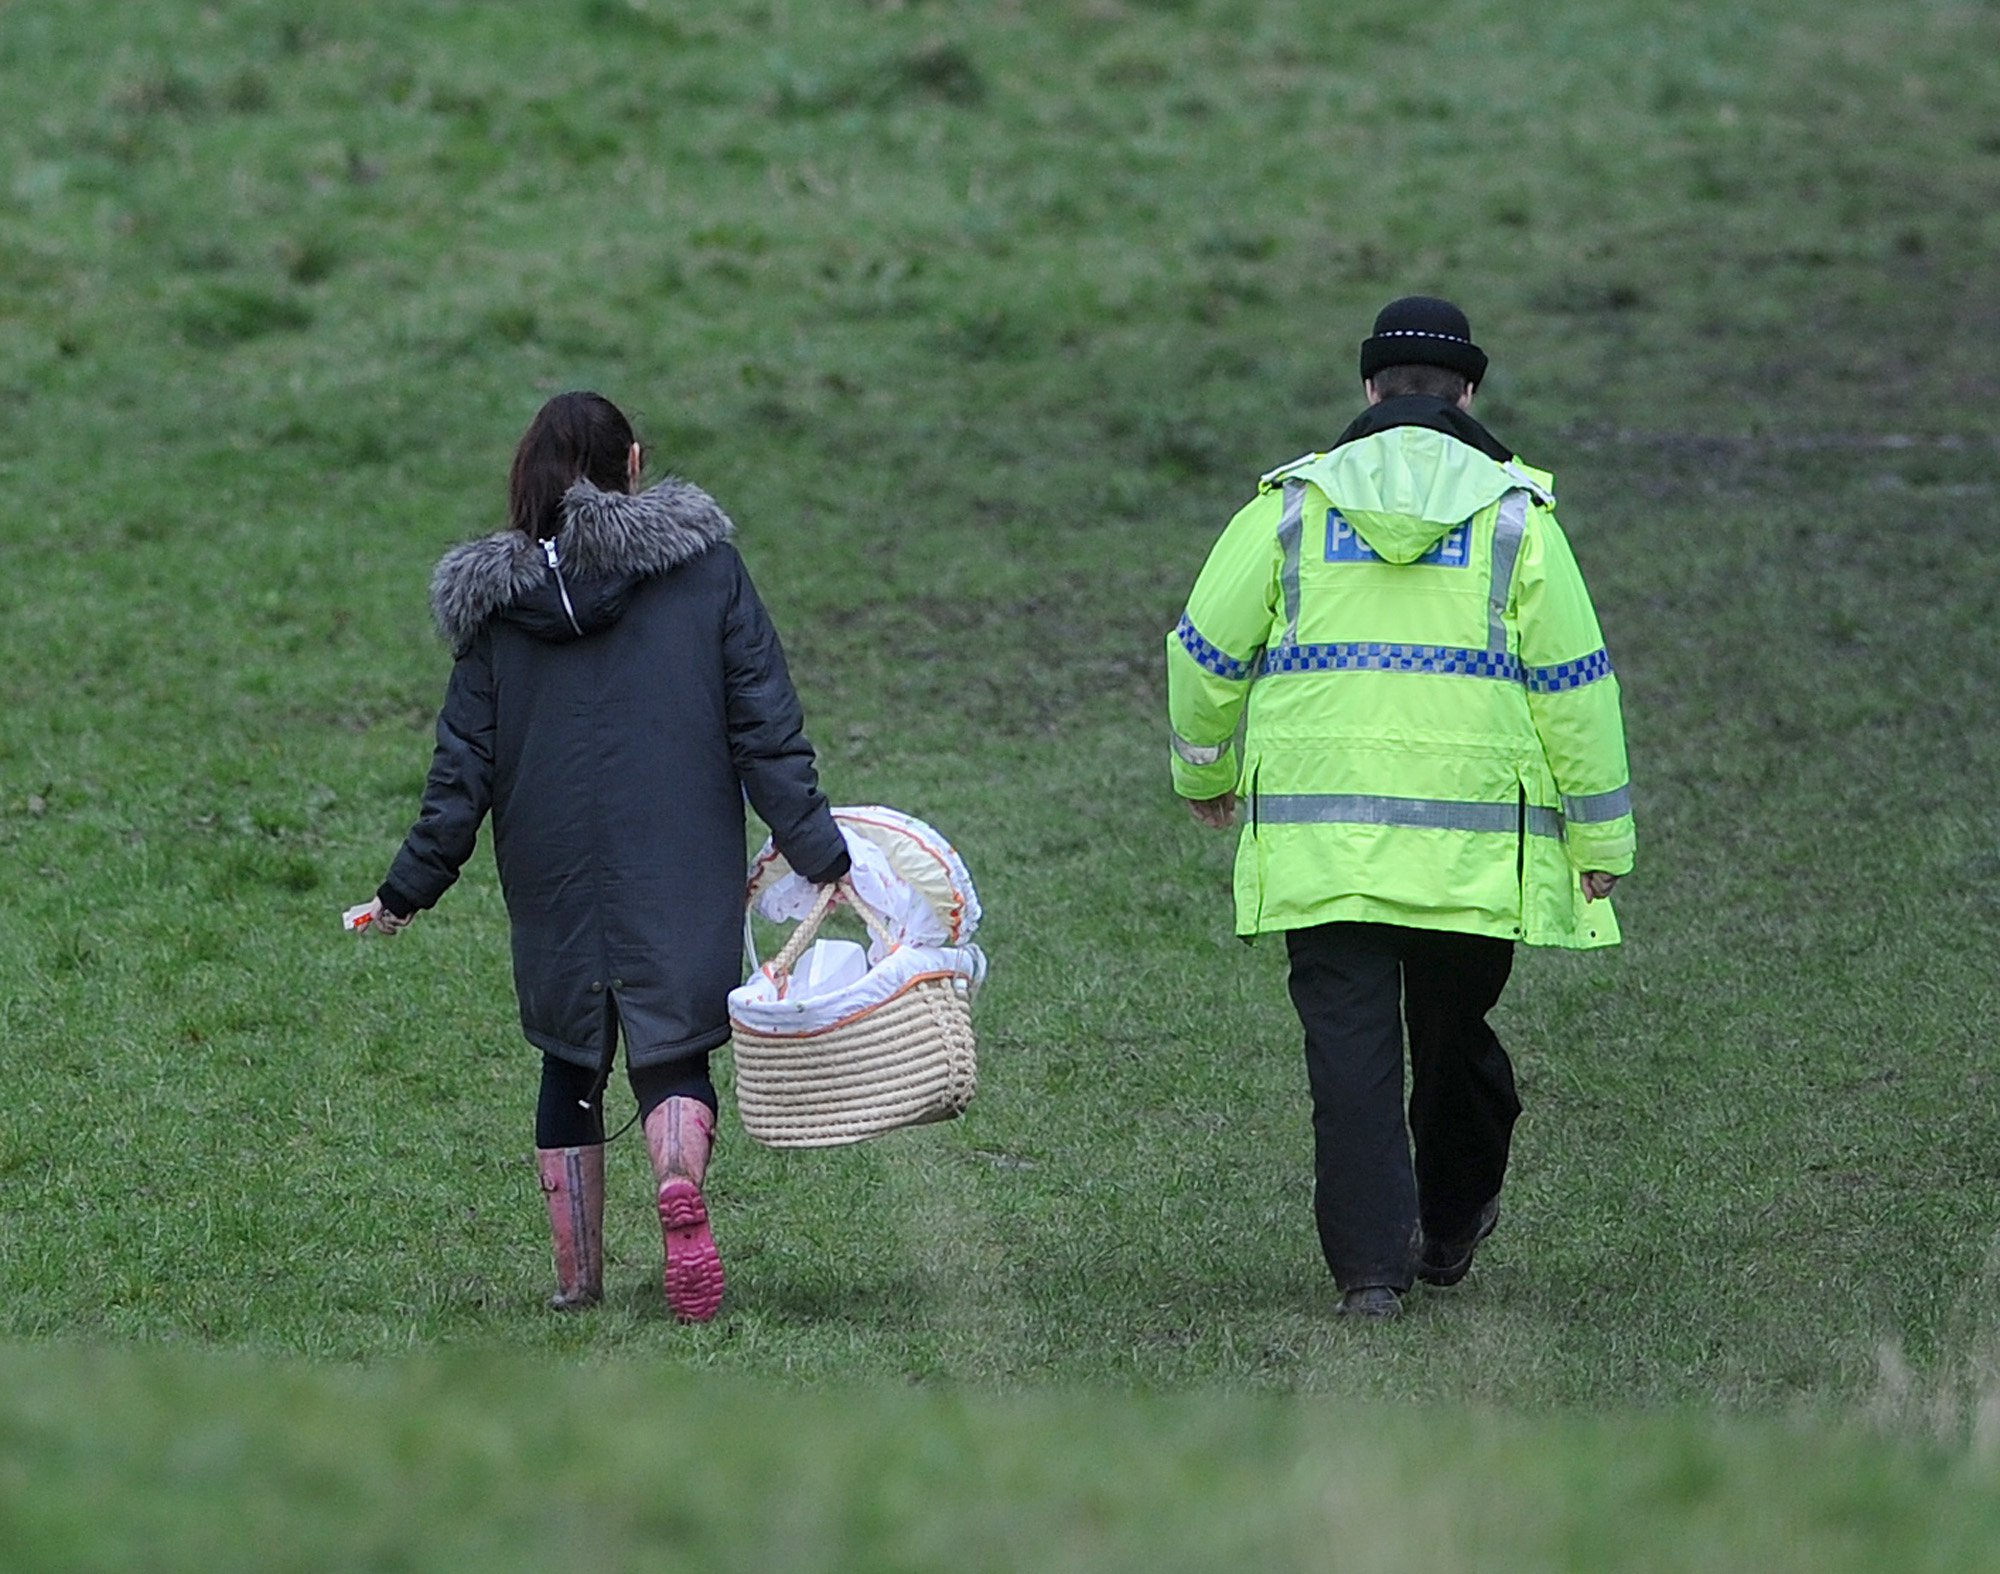 Mum of baby found dead in woods was probed by police over deaths of other children